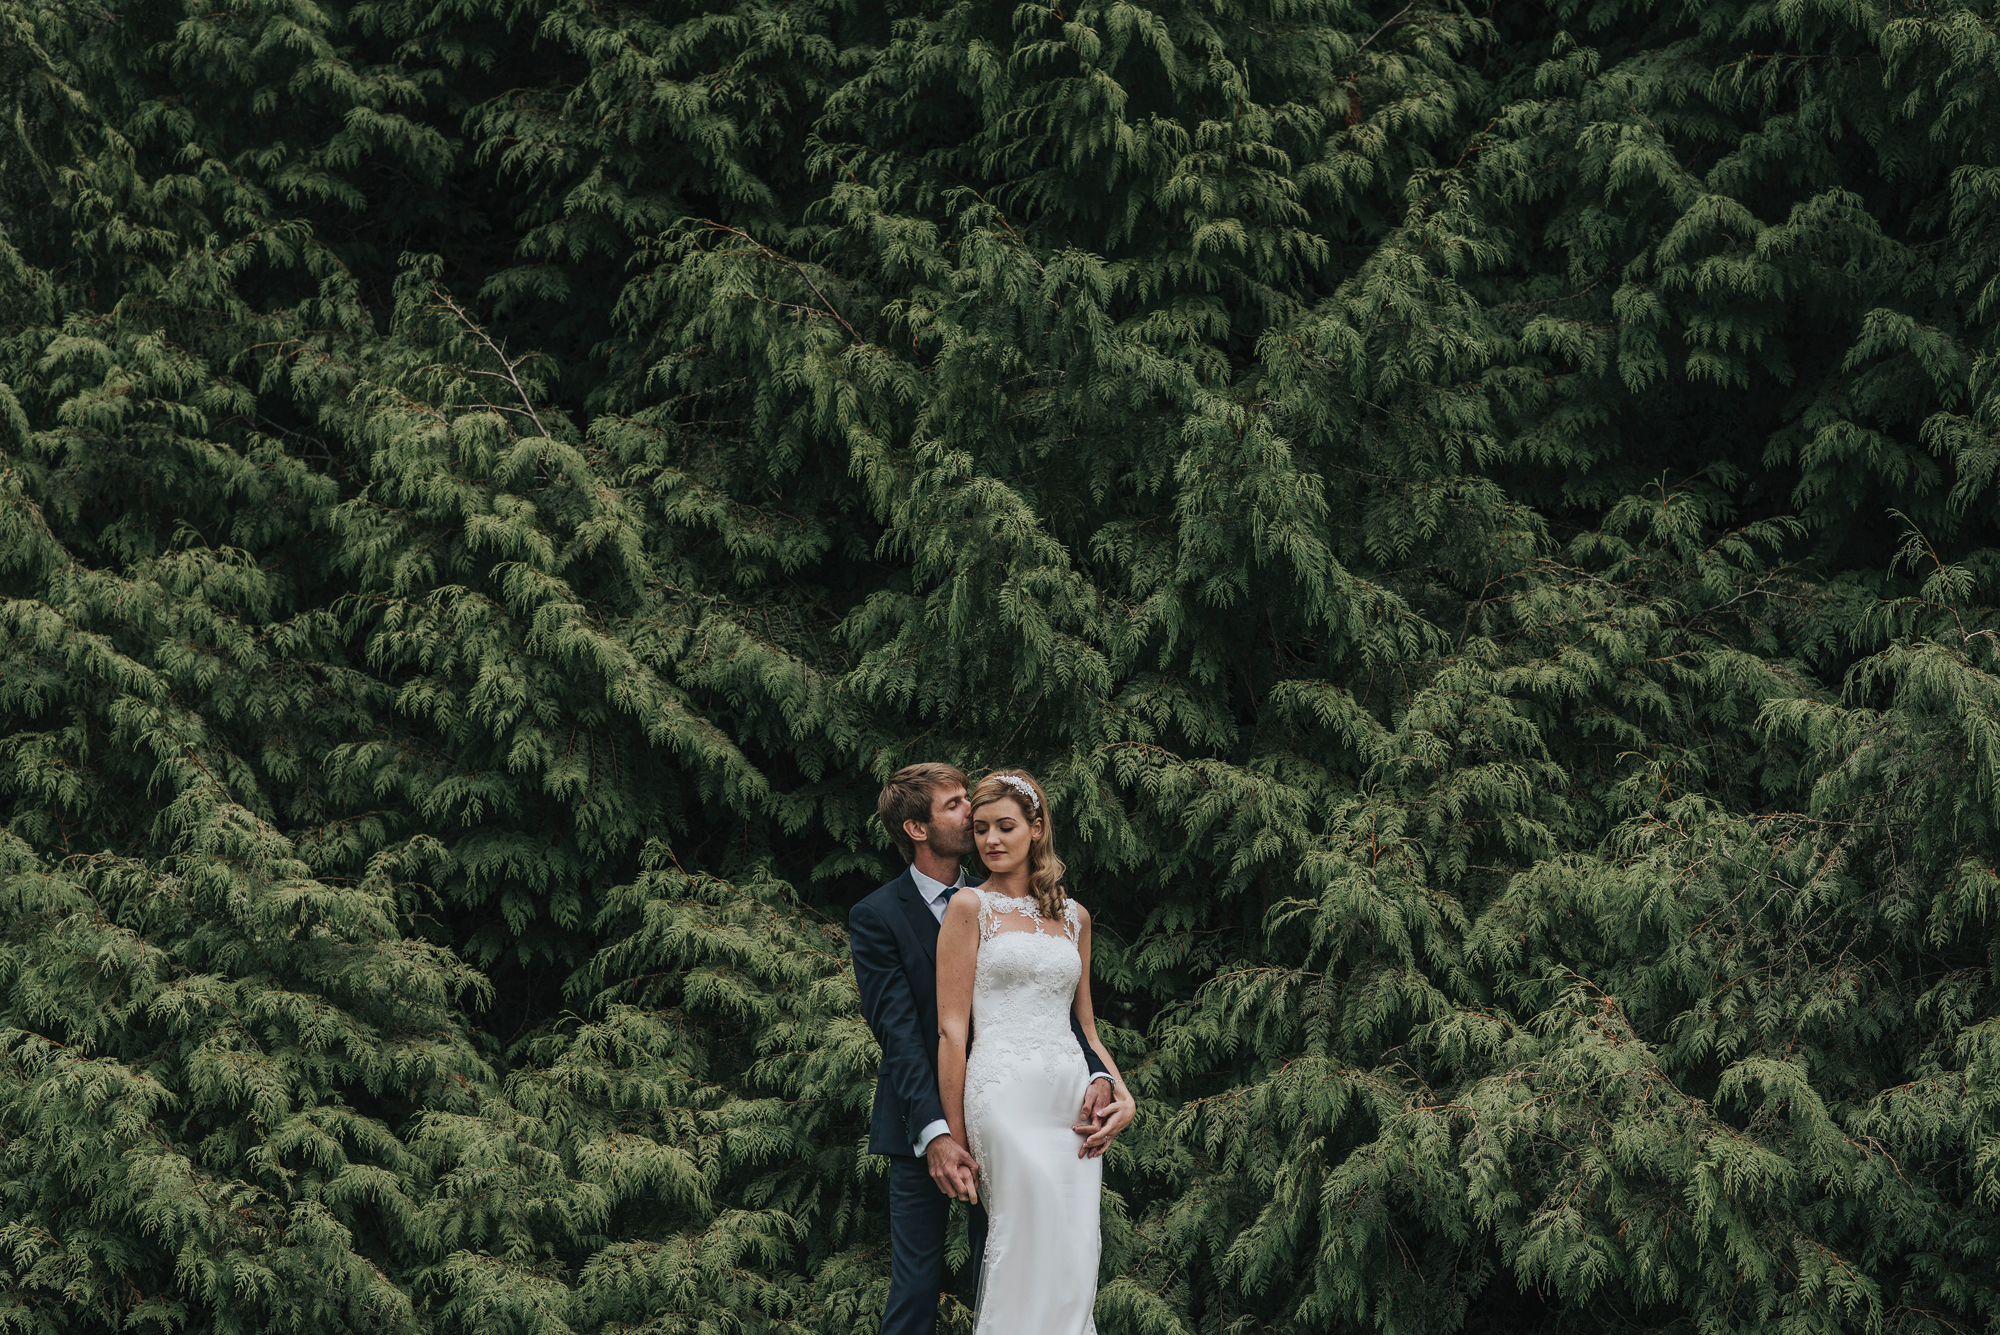 Frances_meaney_wedding_photographer_northern_ireland_inspire=weddings_2.jpg